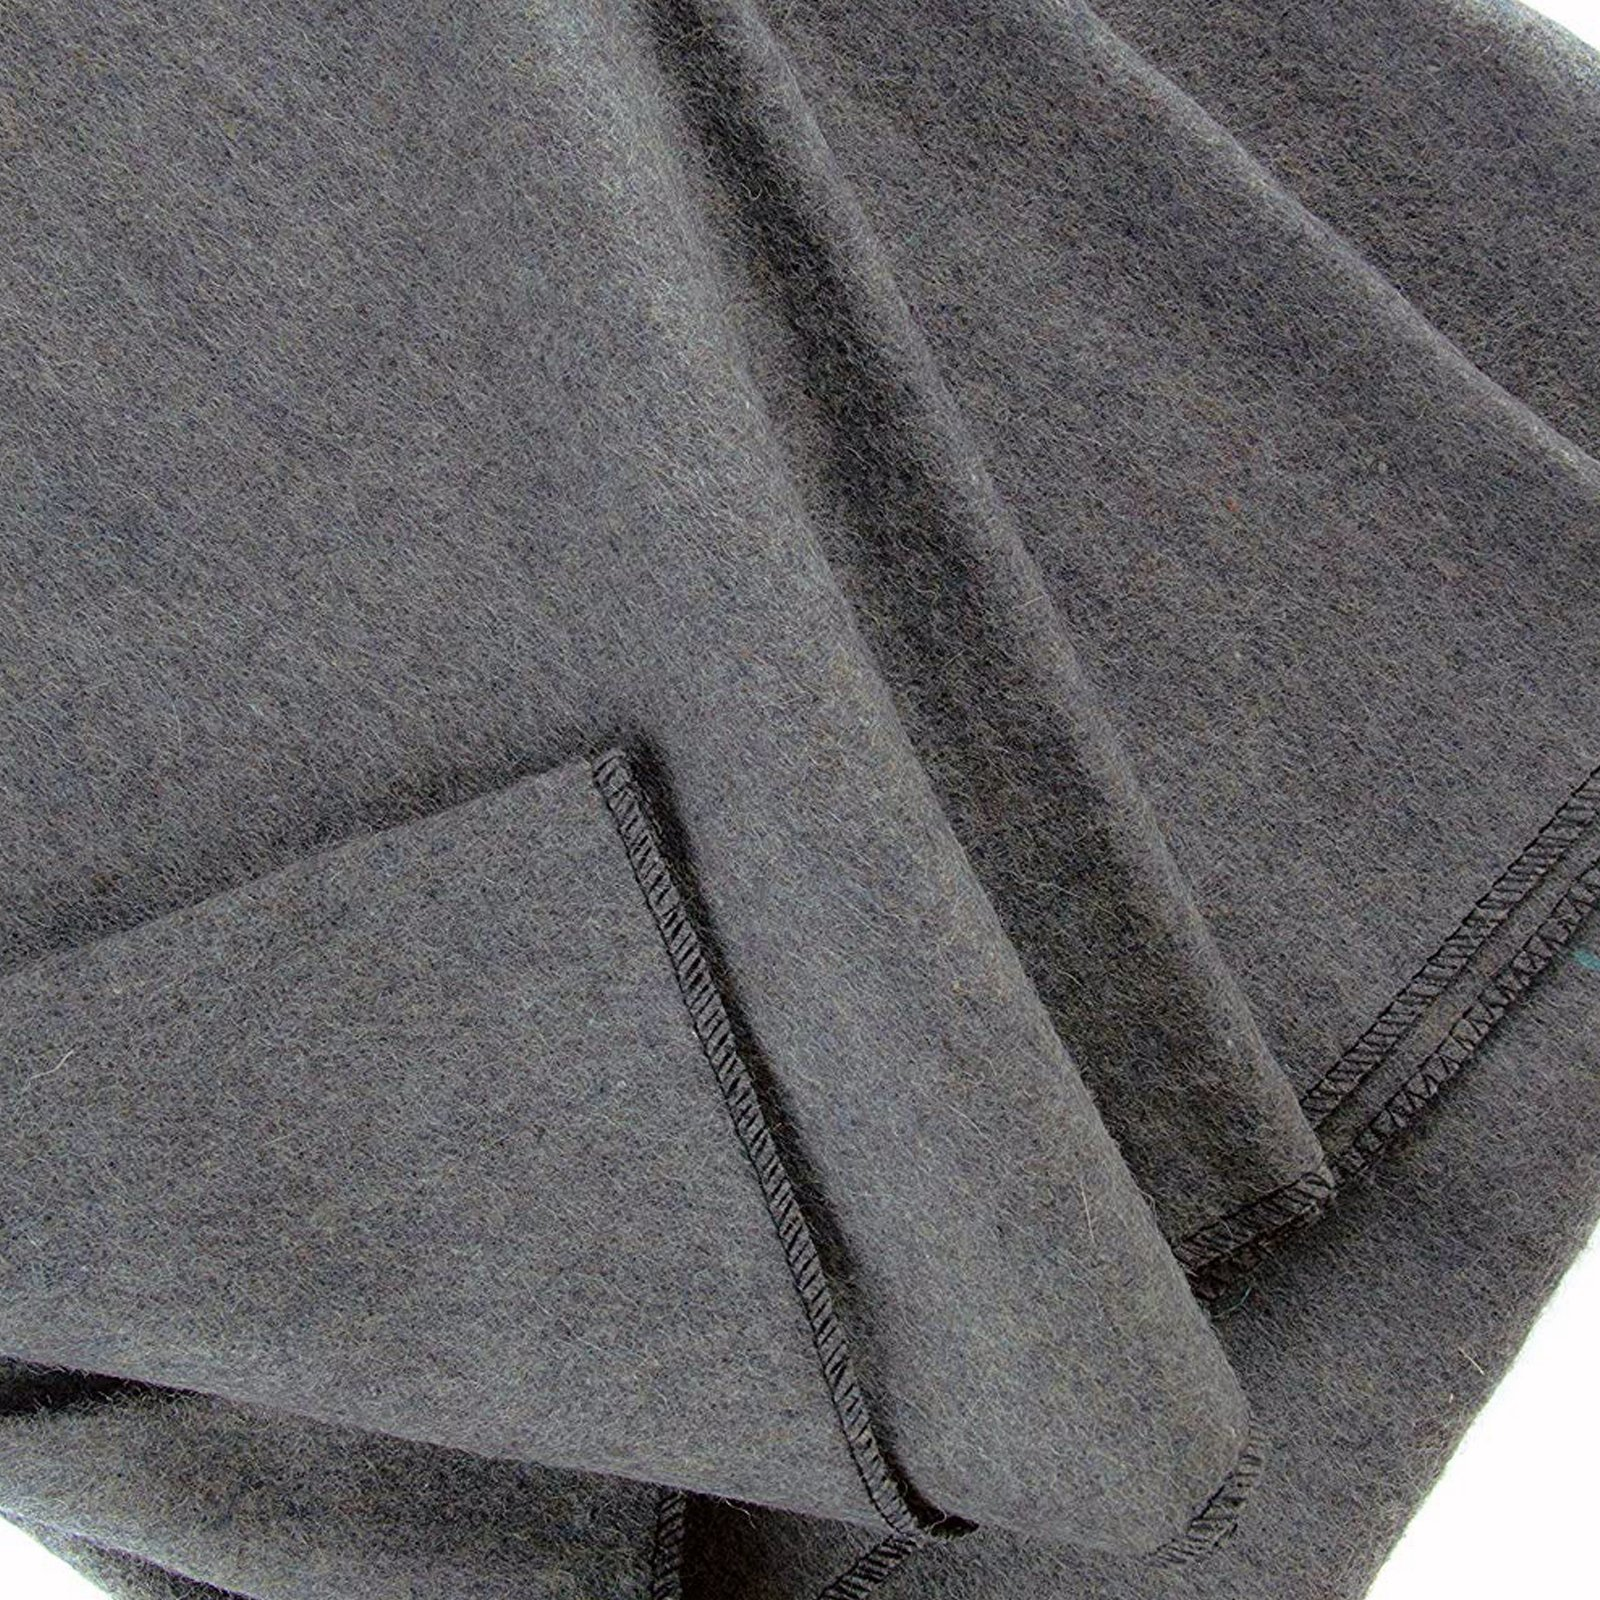 ASR Outdoor - 60 inch x 80 inch Grey Wool Blanket - 3 Pounds 70 Percent Wool